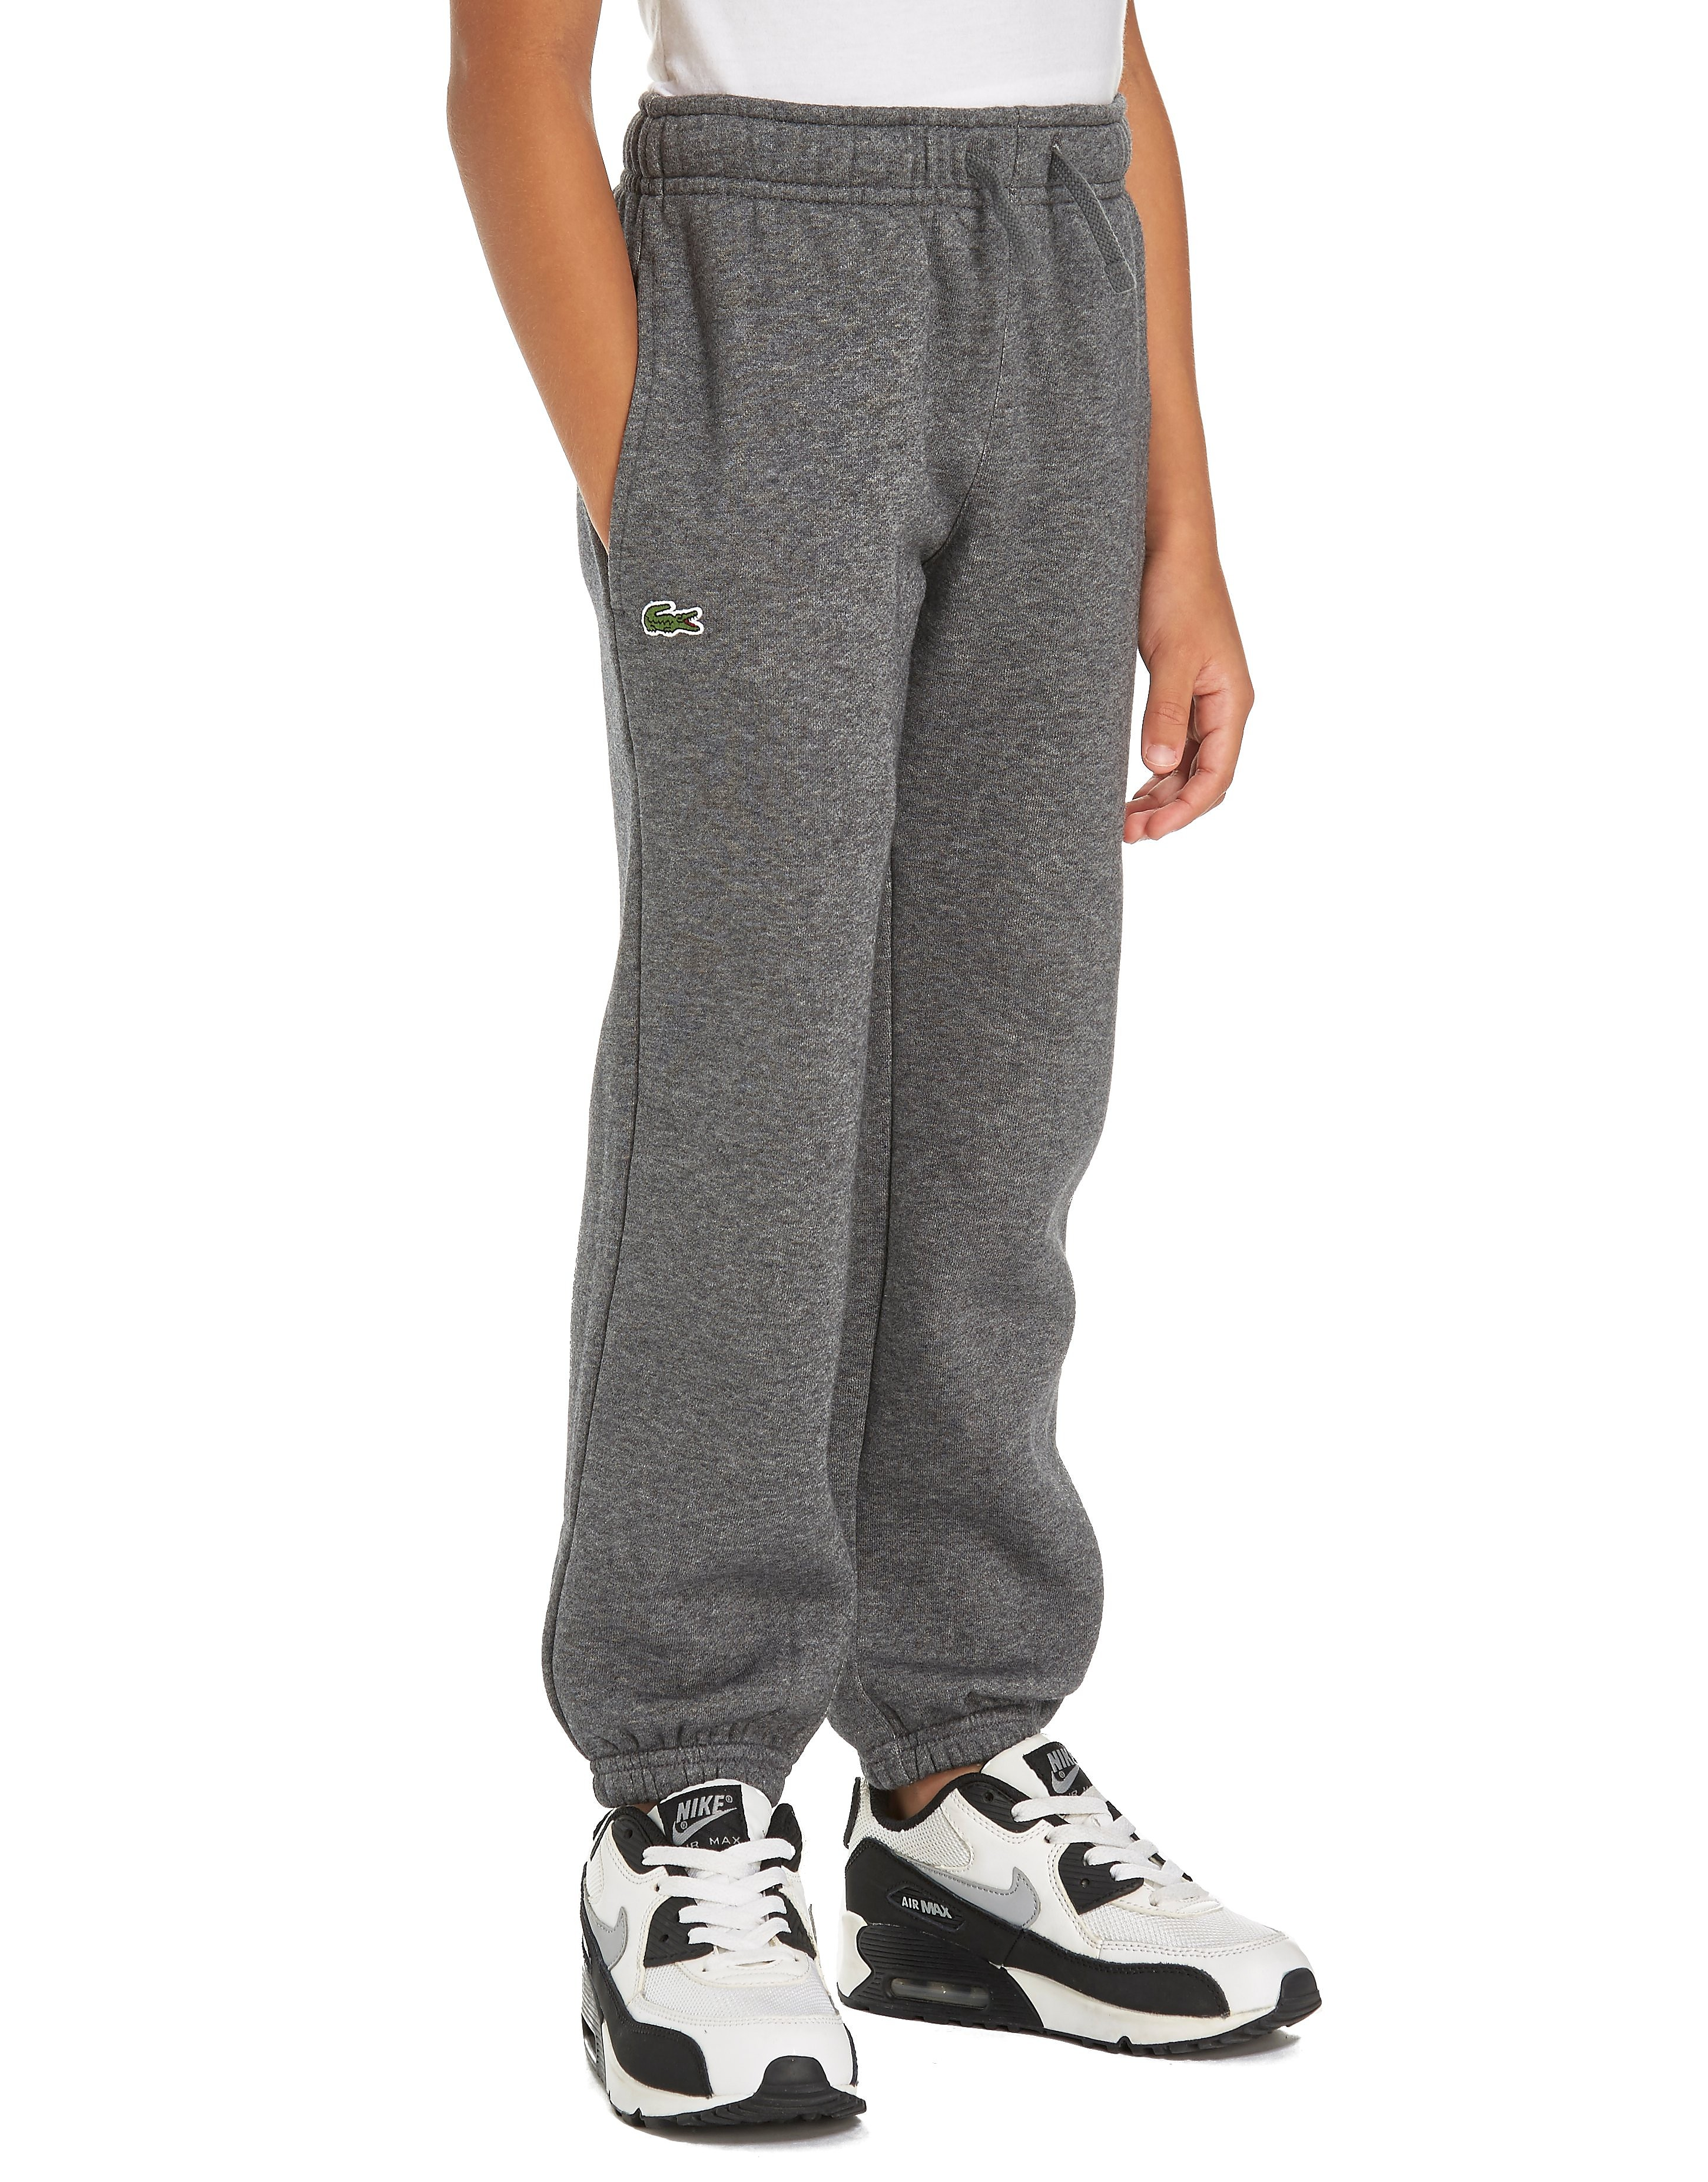 Lacoste Small Logo Track Pants Children